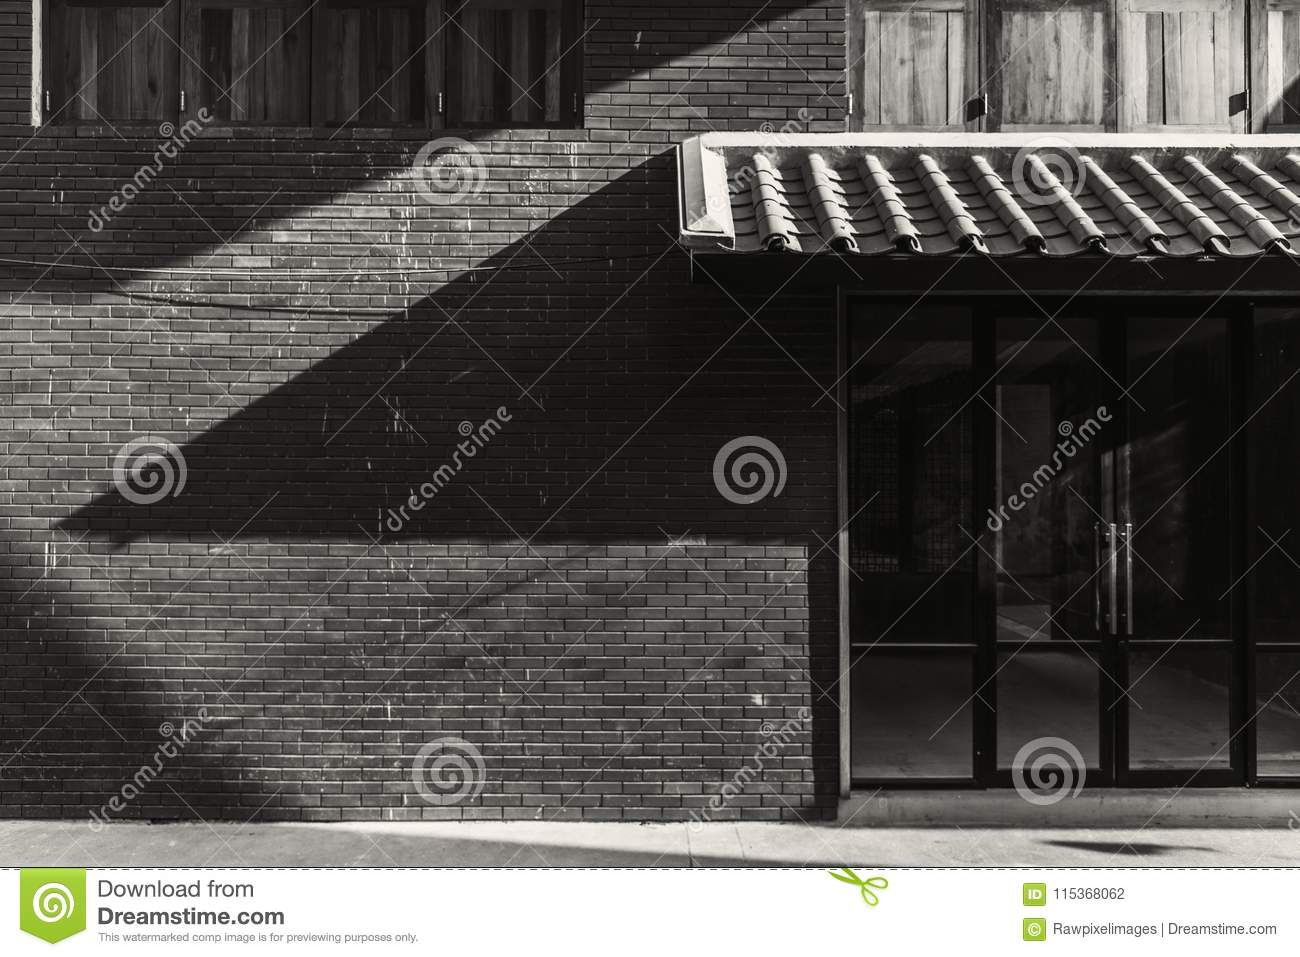 e7d94b2314 Exterior Of A Shopfront In The City Stock Photo - Image of city ...